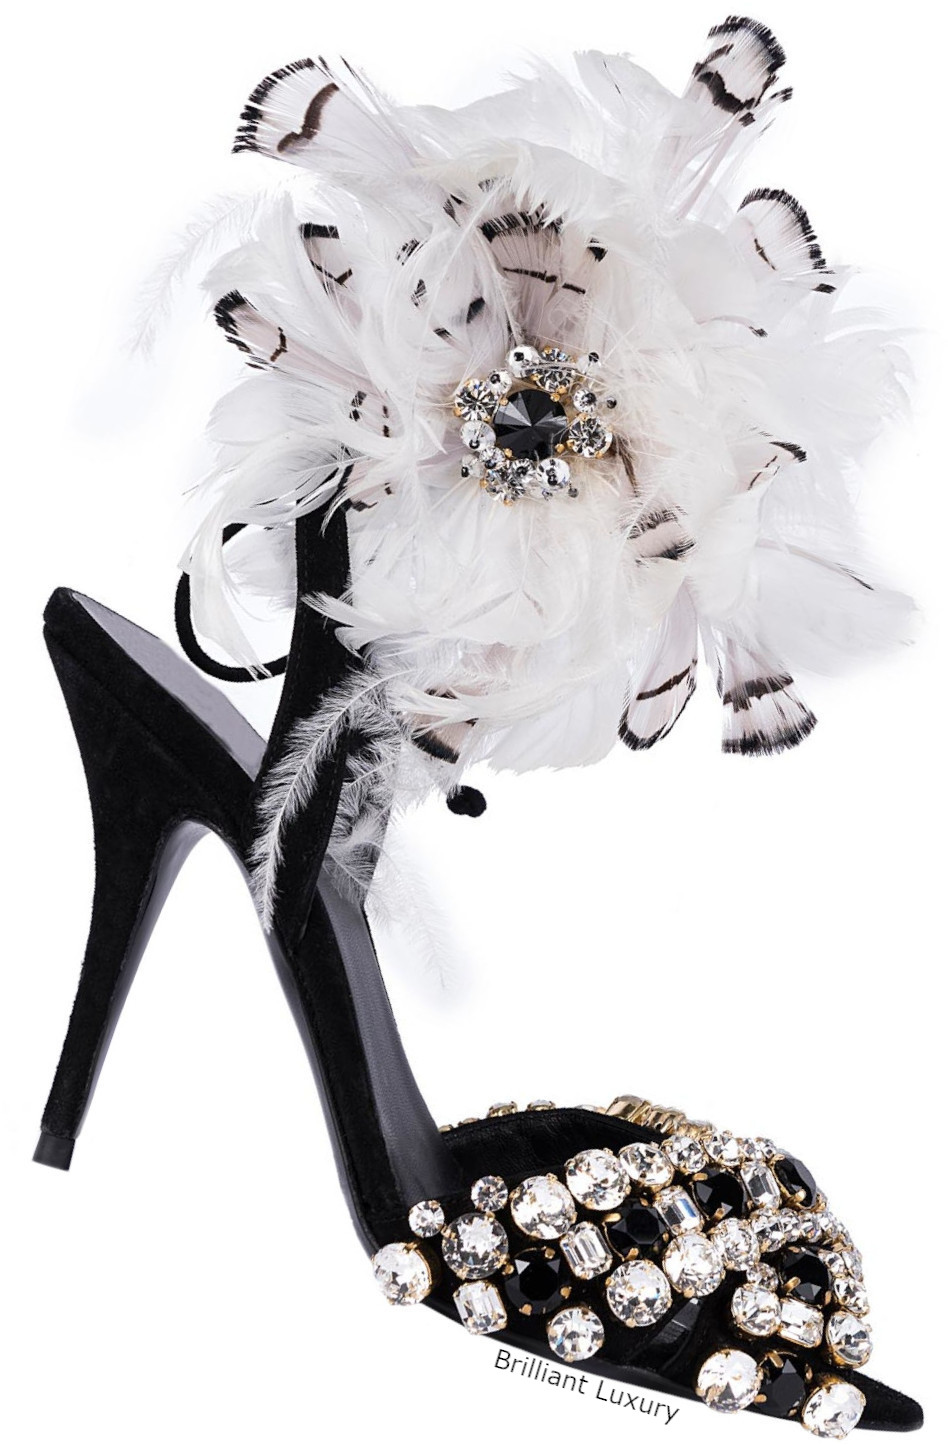 Gedebe feathered sandals in black and white